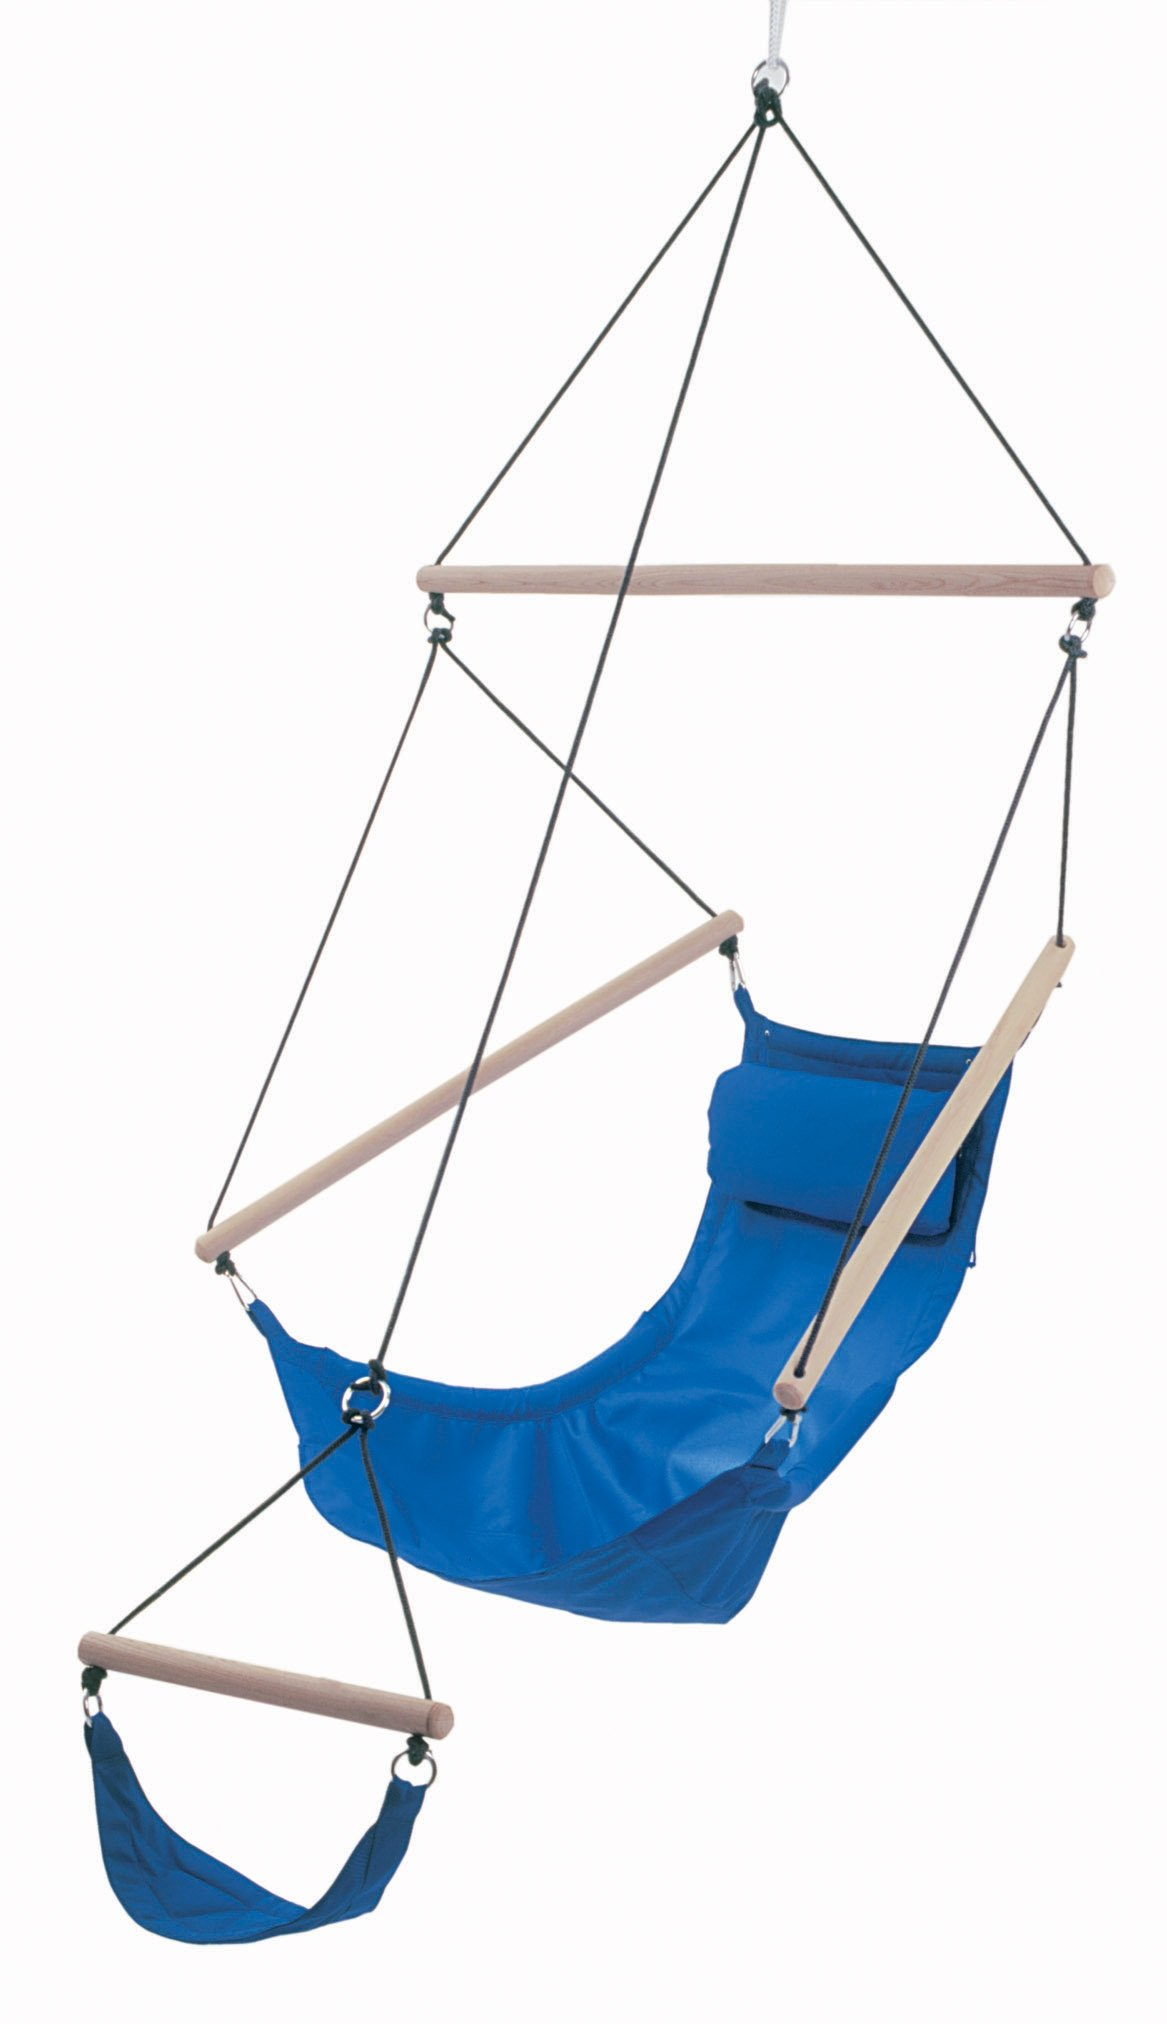 Byer of Maine Model A211004 Swinger Chair Blue